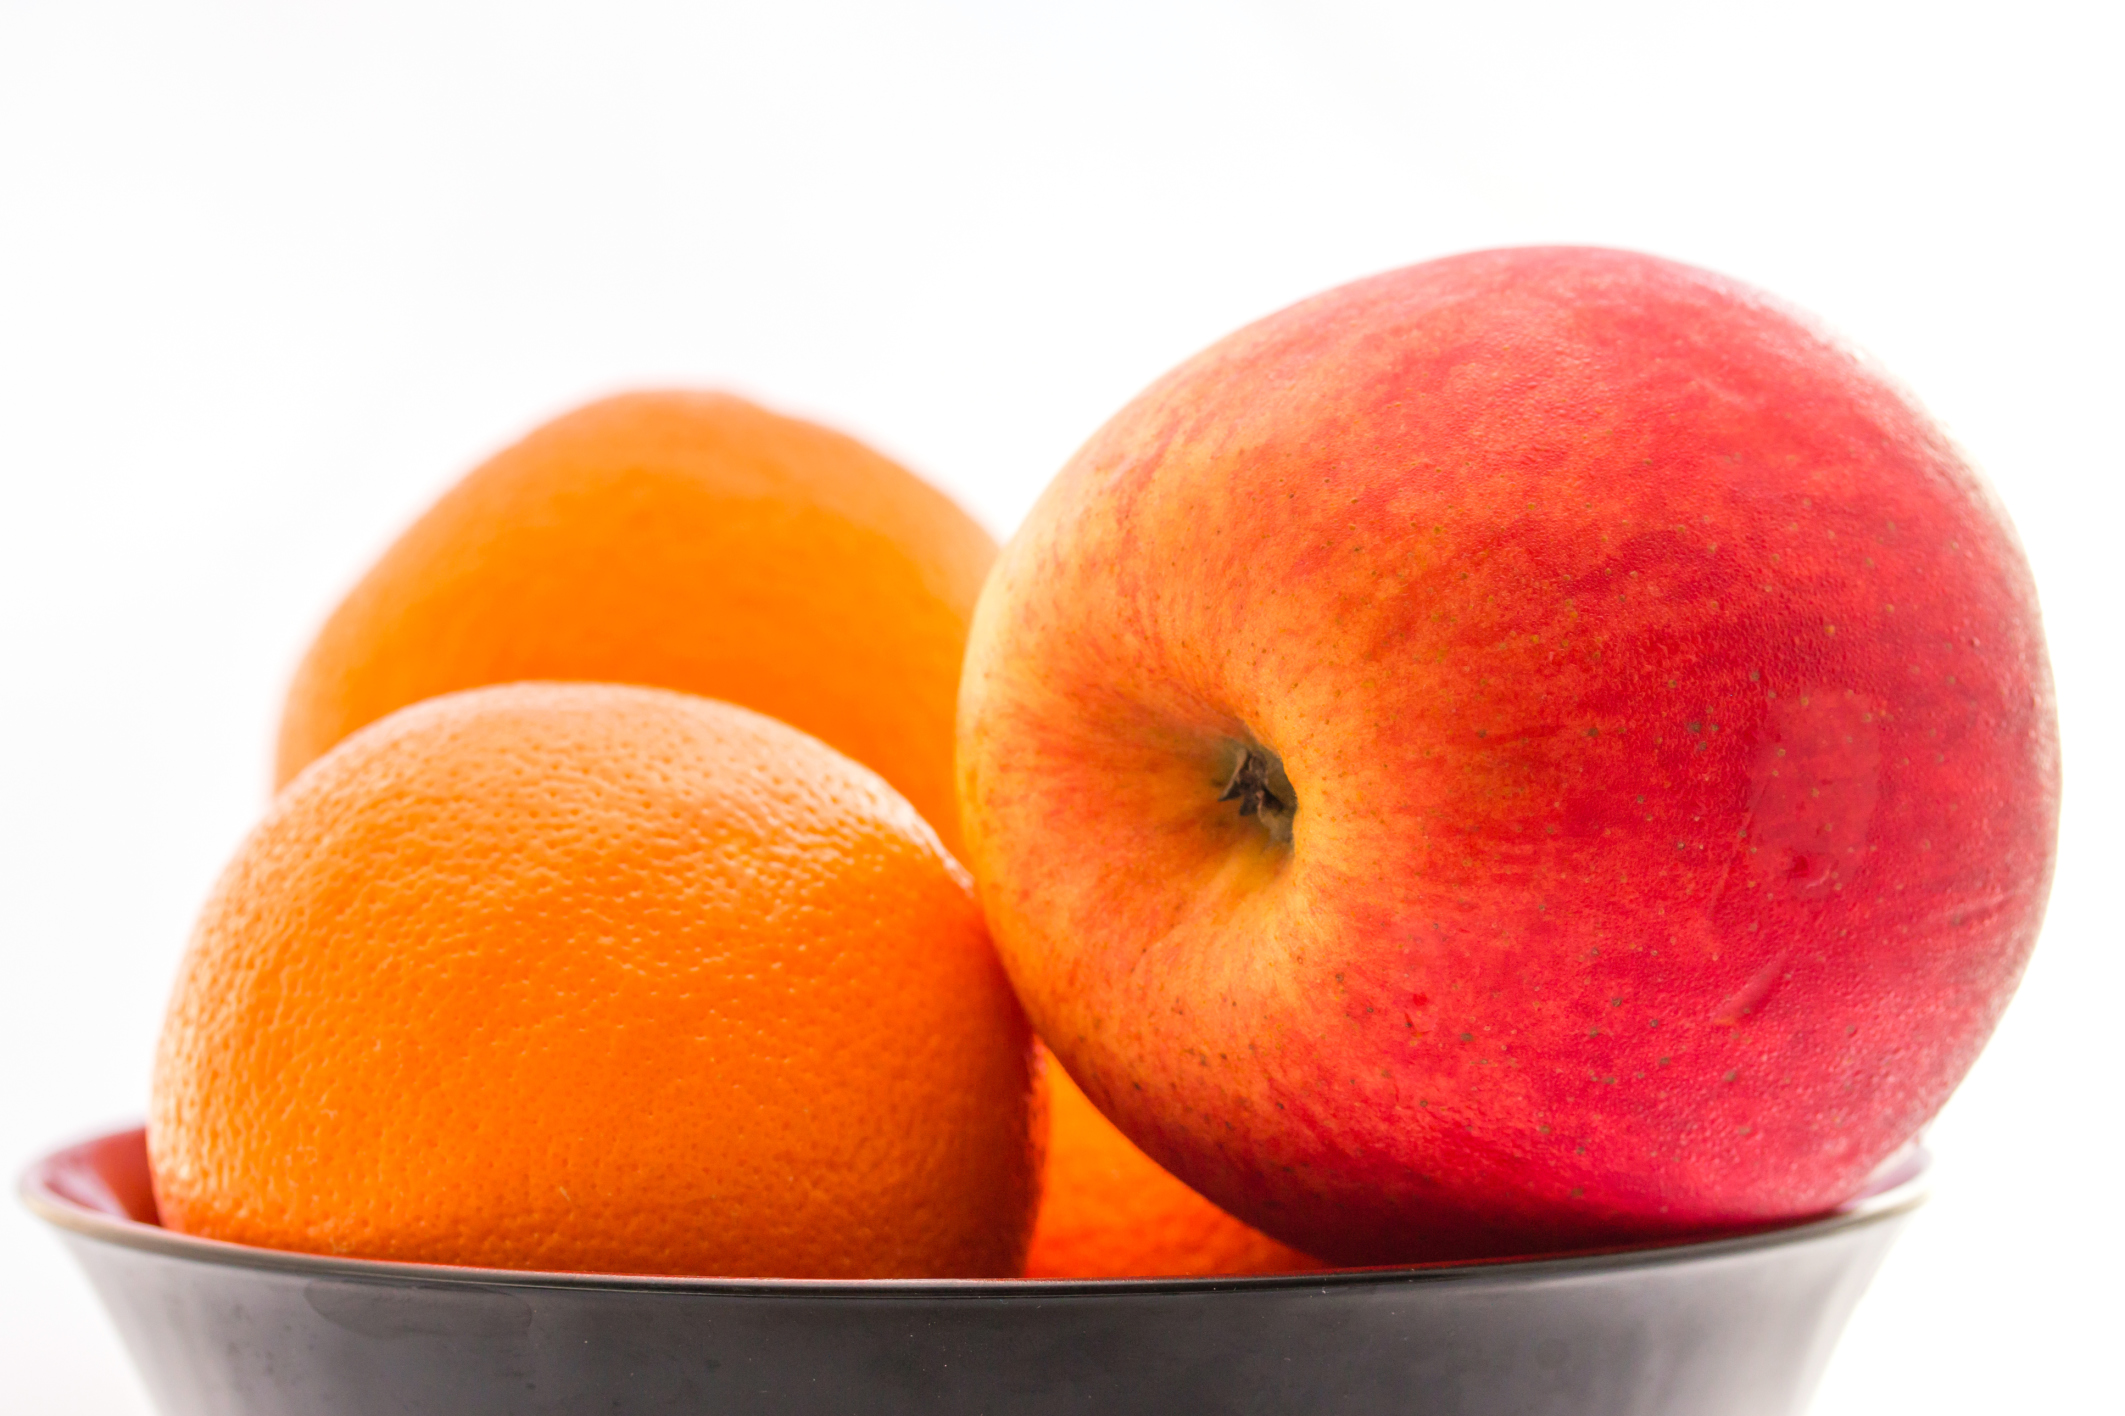 Diseases From Not Eating Enough Fruits | LIVESTRONG.COM